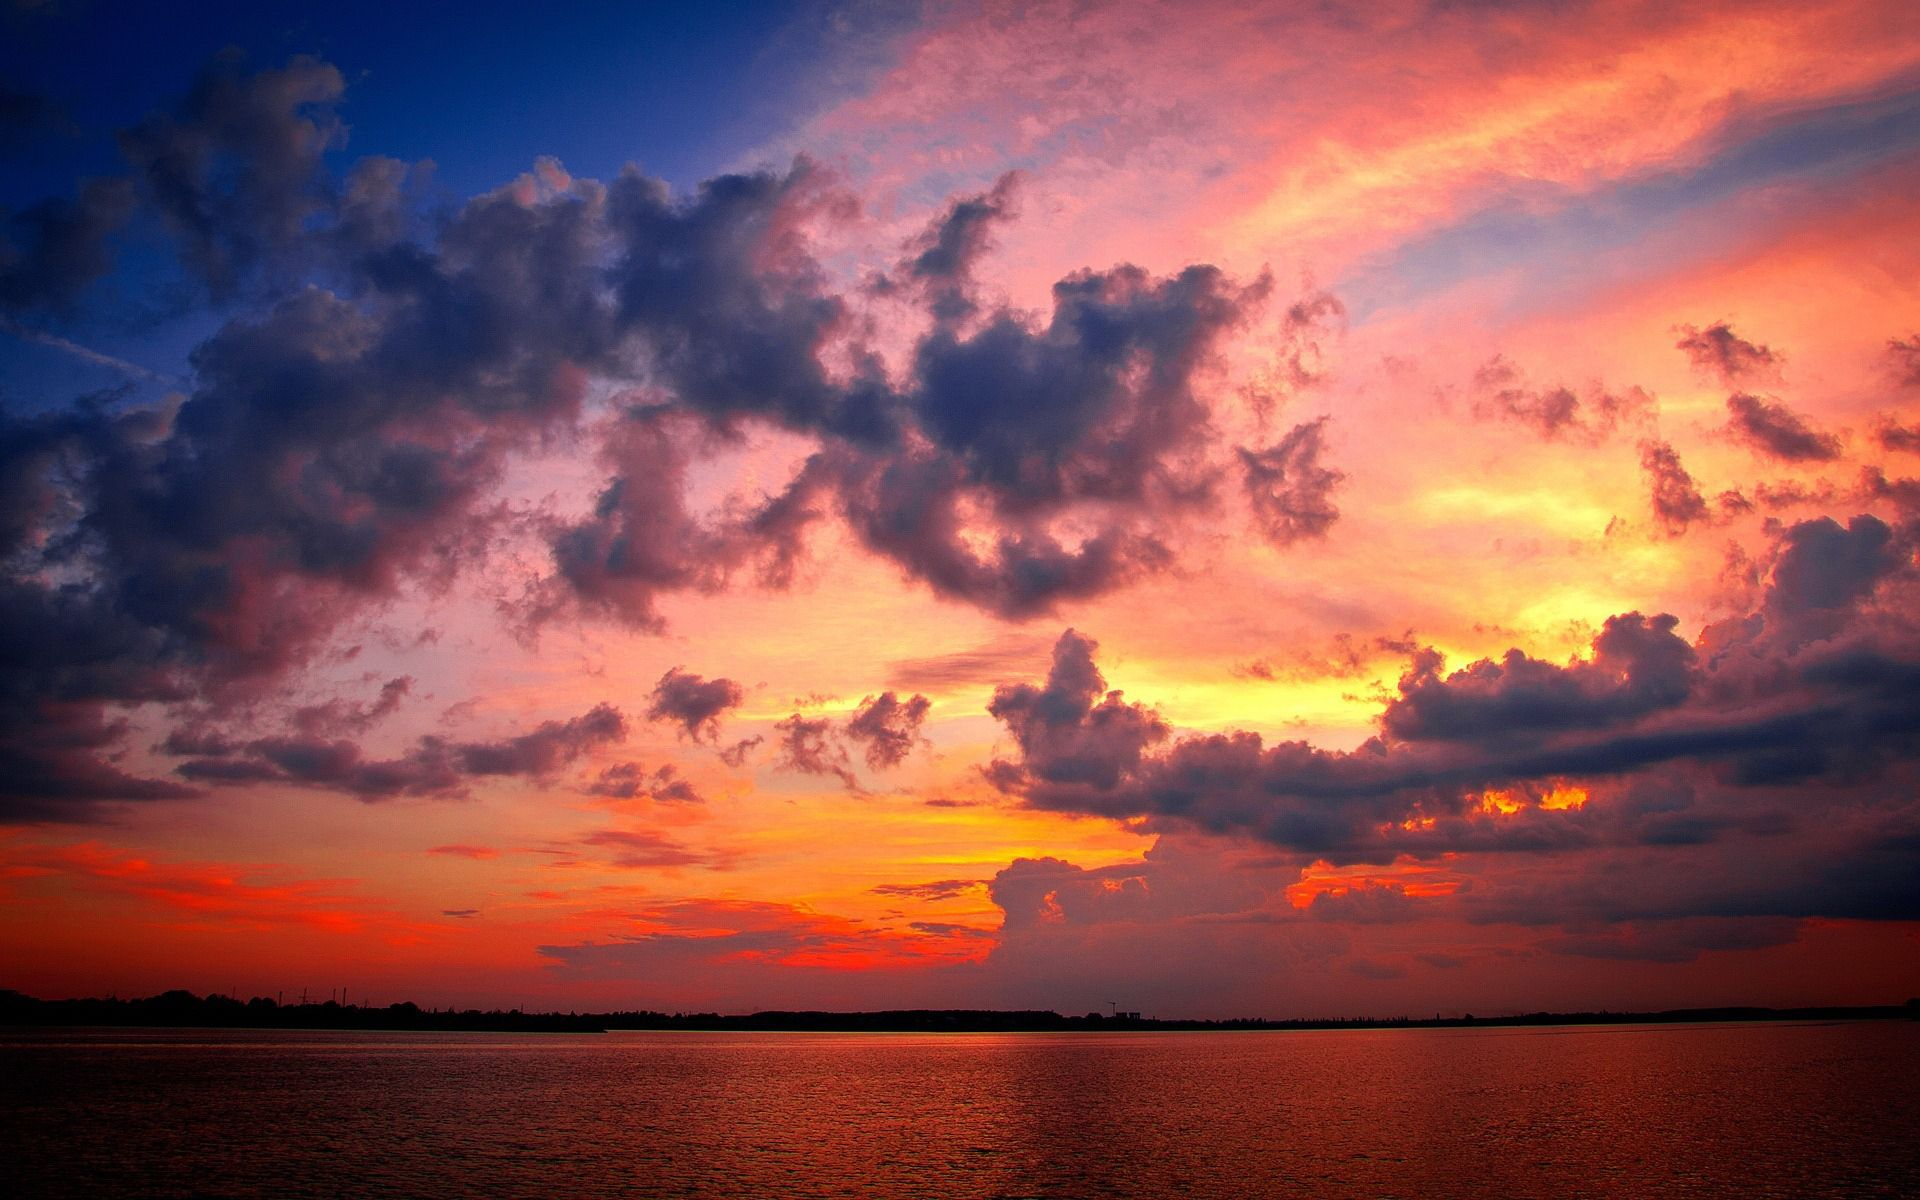 Sky Background Images Hd 1080p Free Download